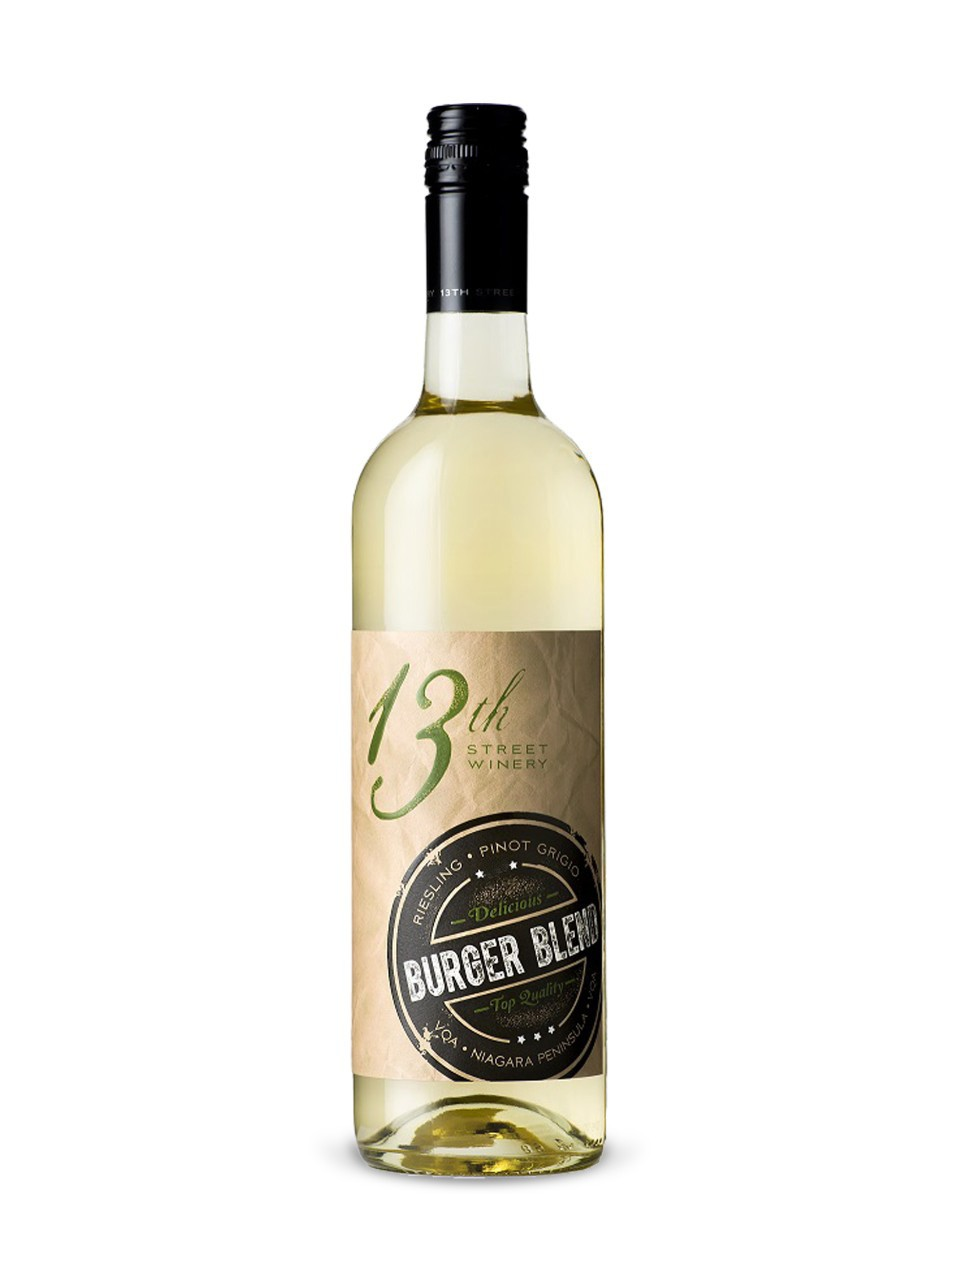 Image for 13th Street Burger Blend Riesling Pinot Grigio VQA from LCBO